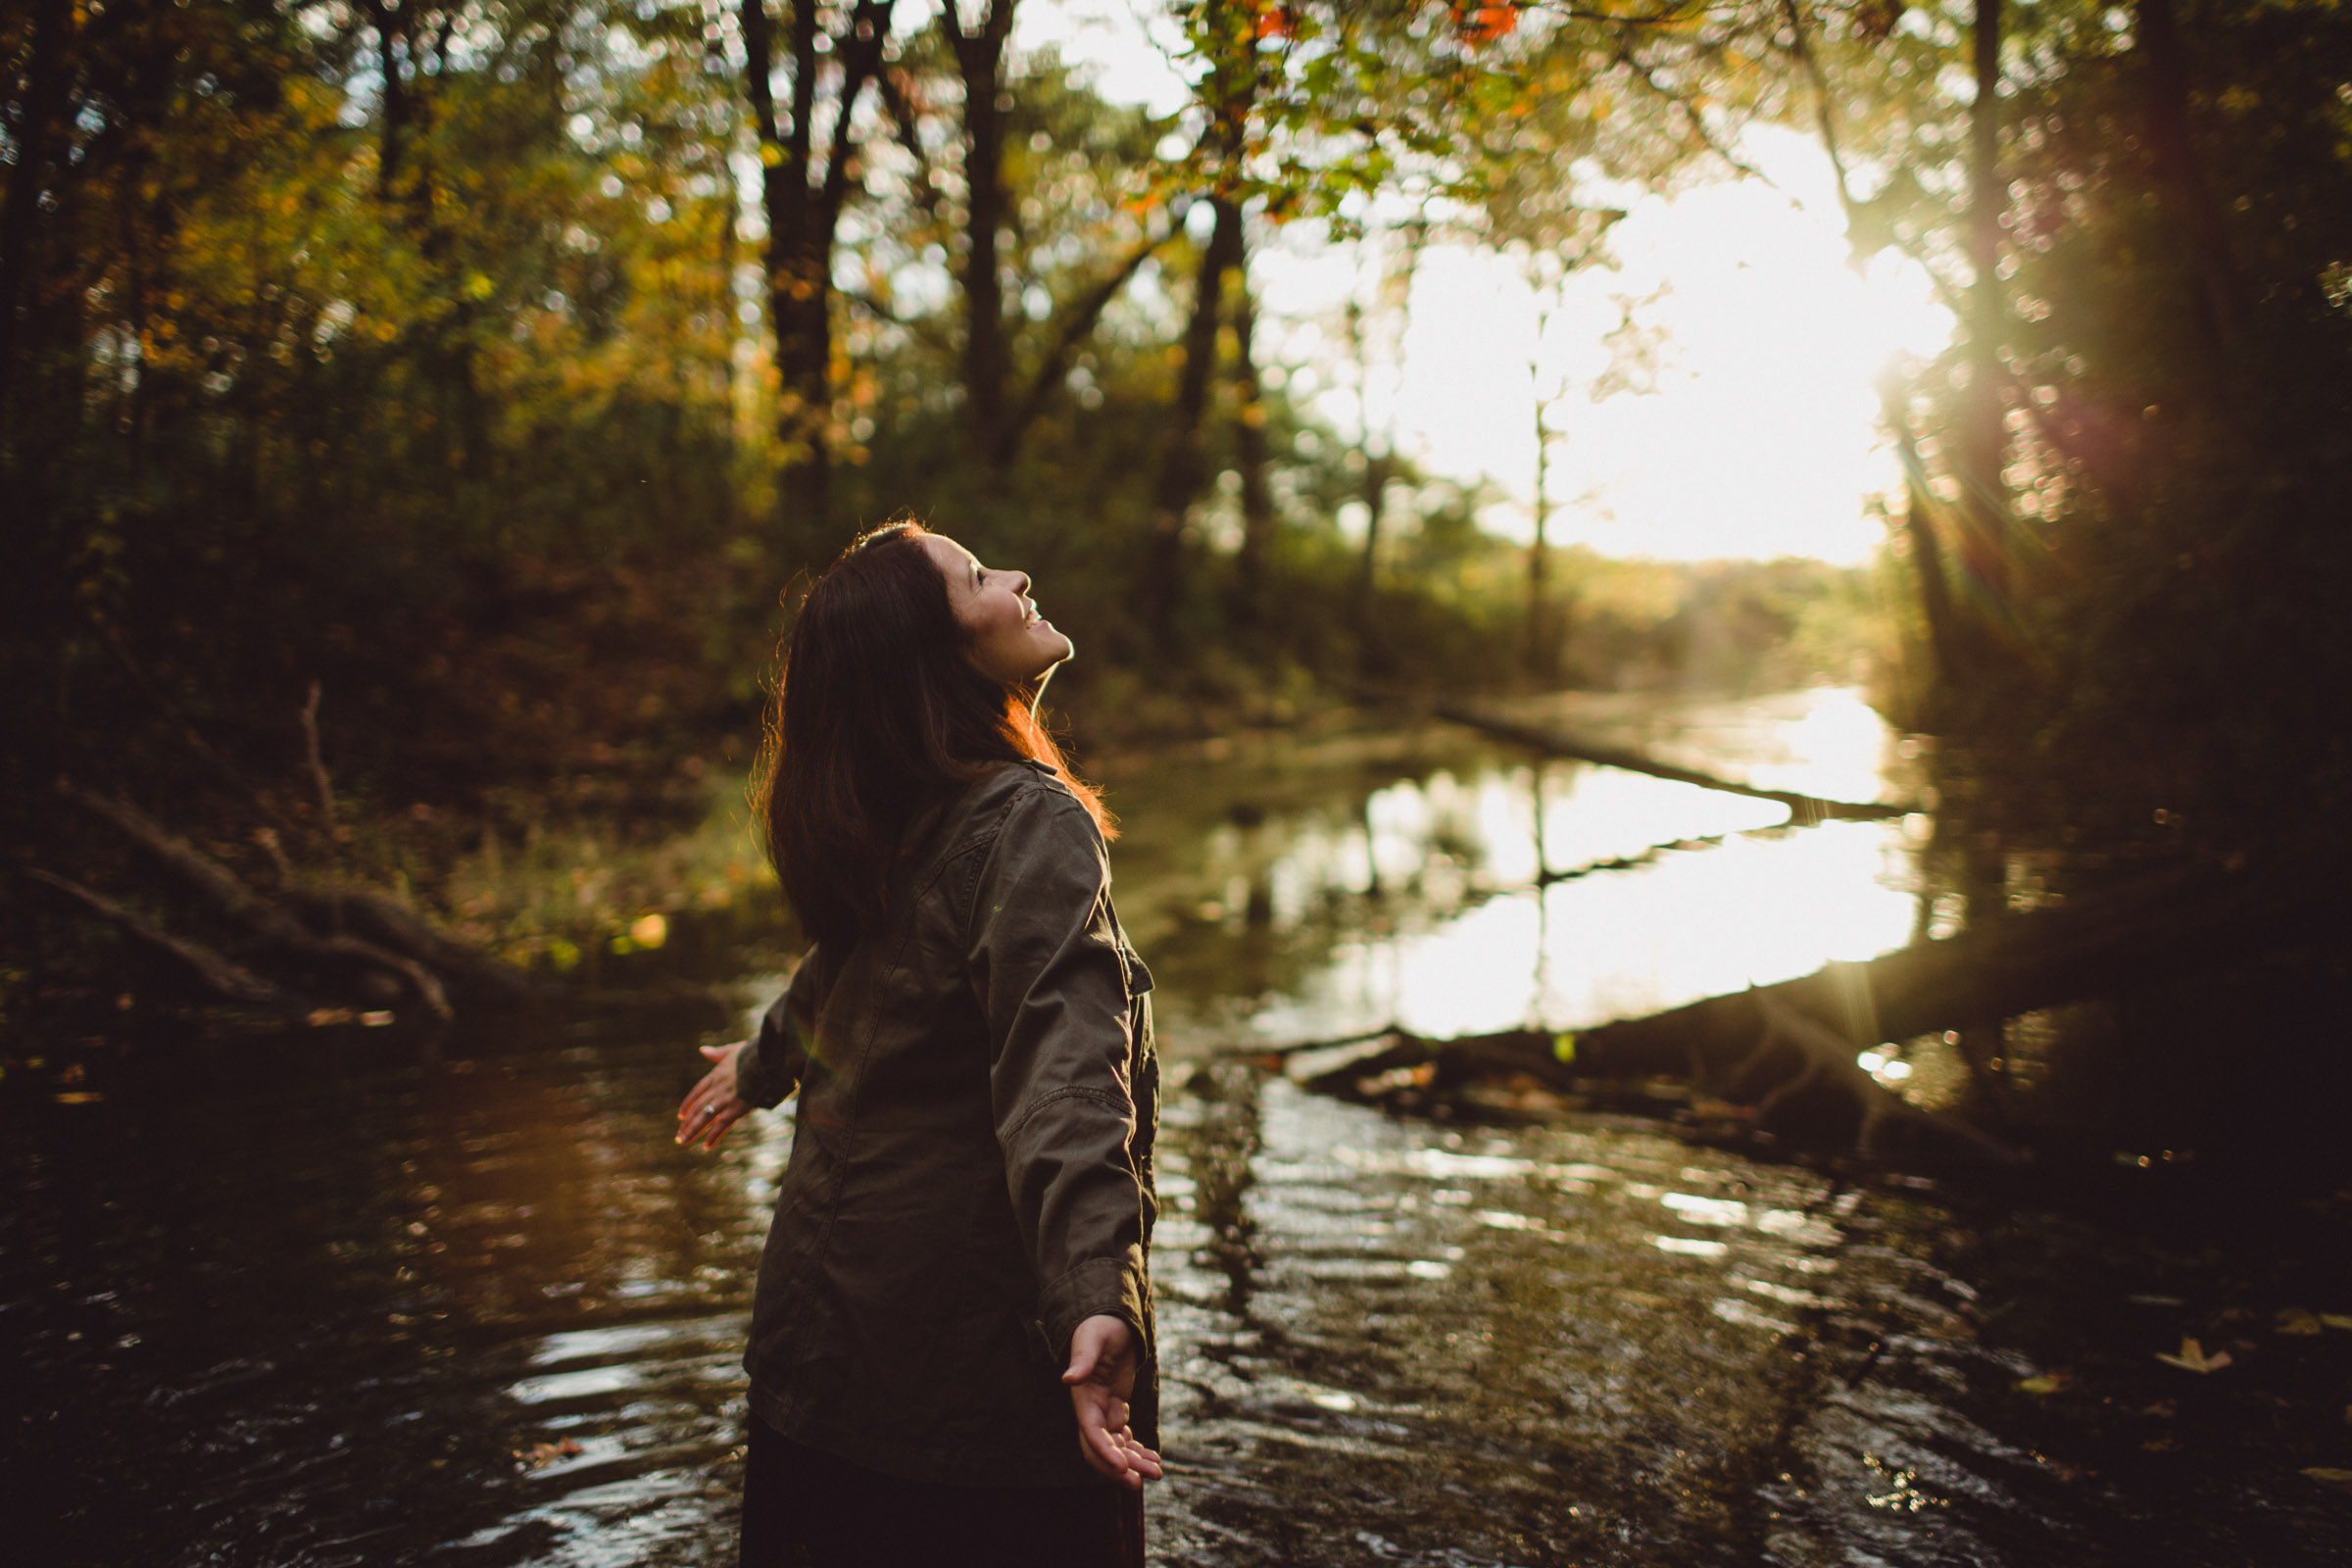 soaking in the joy and sunshine, eyes focused on the light above, girl in creek waters